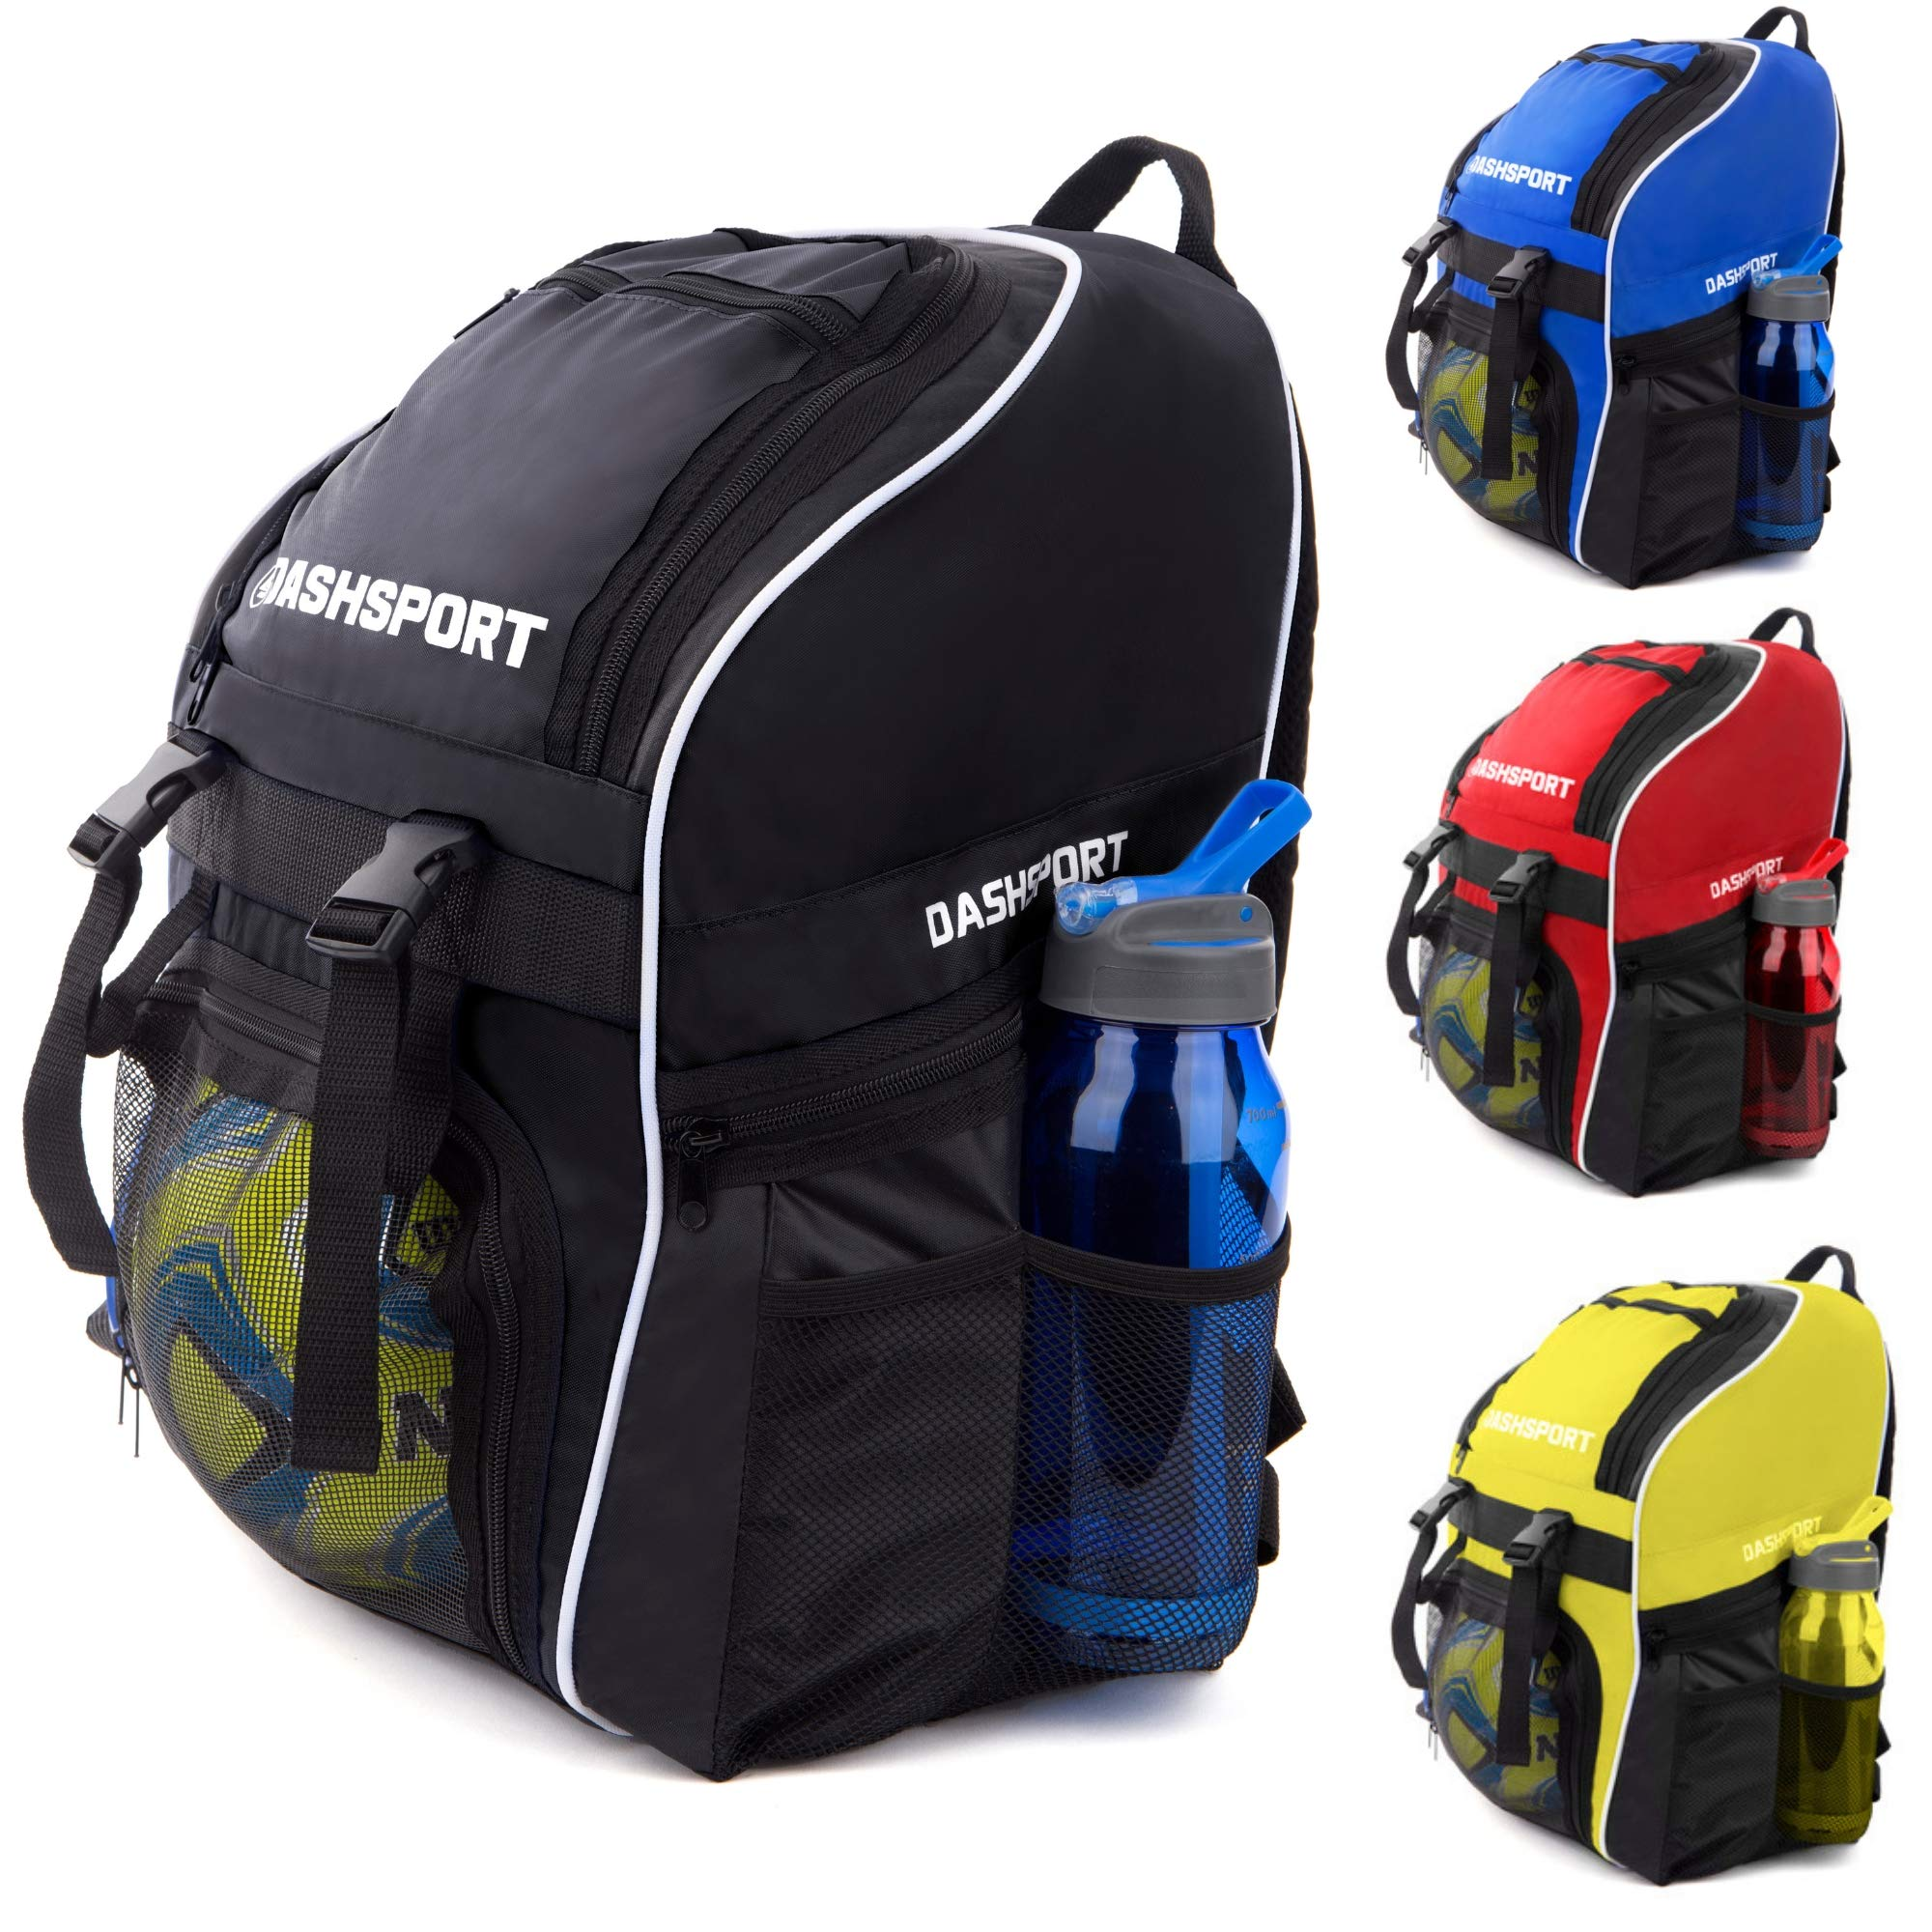 030fe6488d4d Soccer Backpack - Basketball Backpack - Youth Kids Ages 6 and Up - with  Ball Compartment